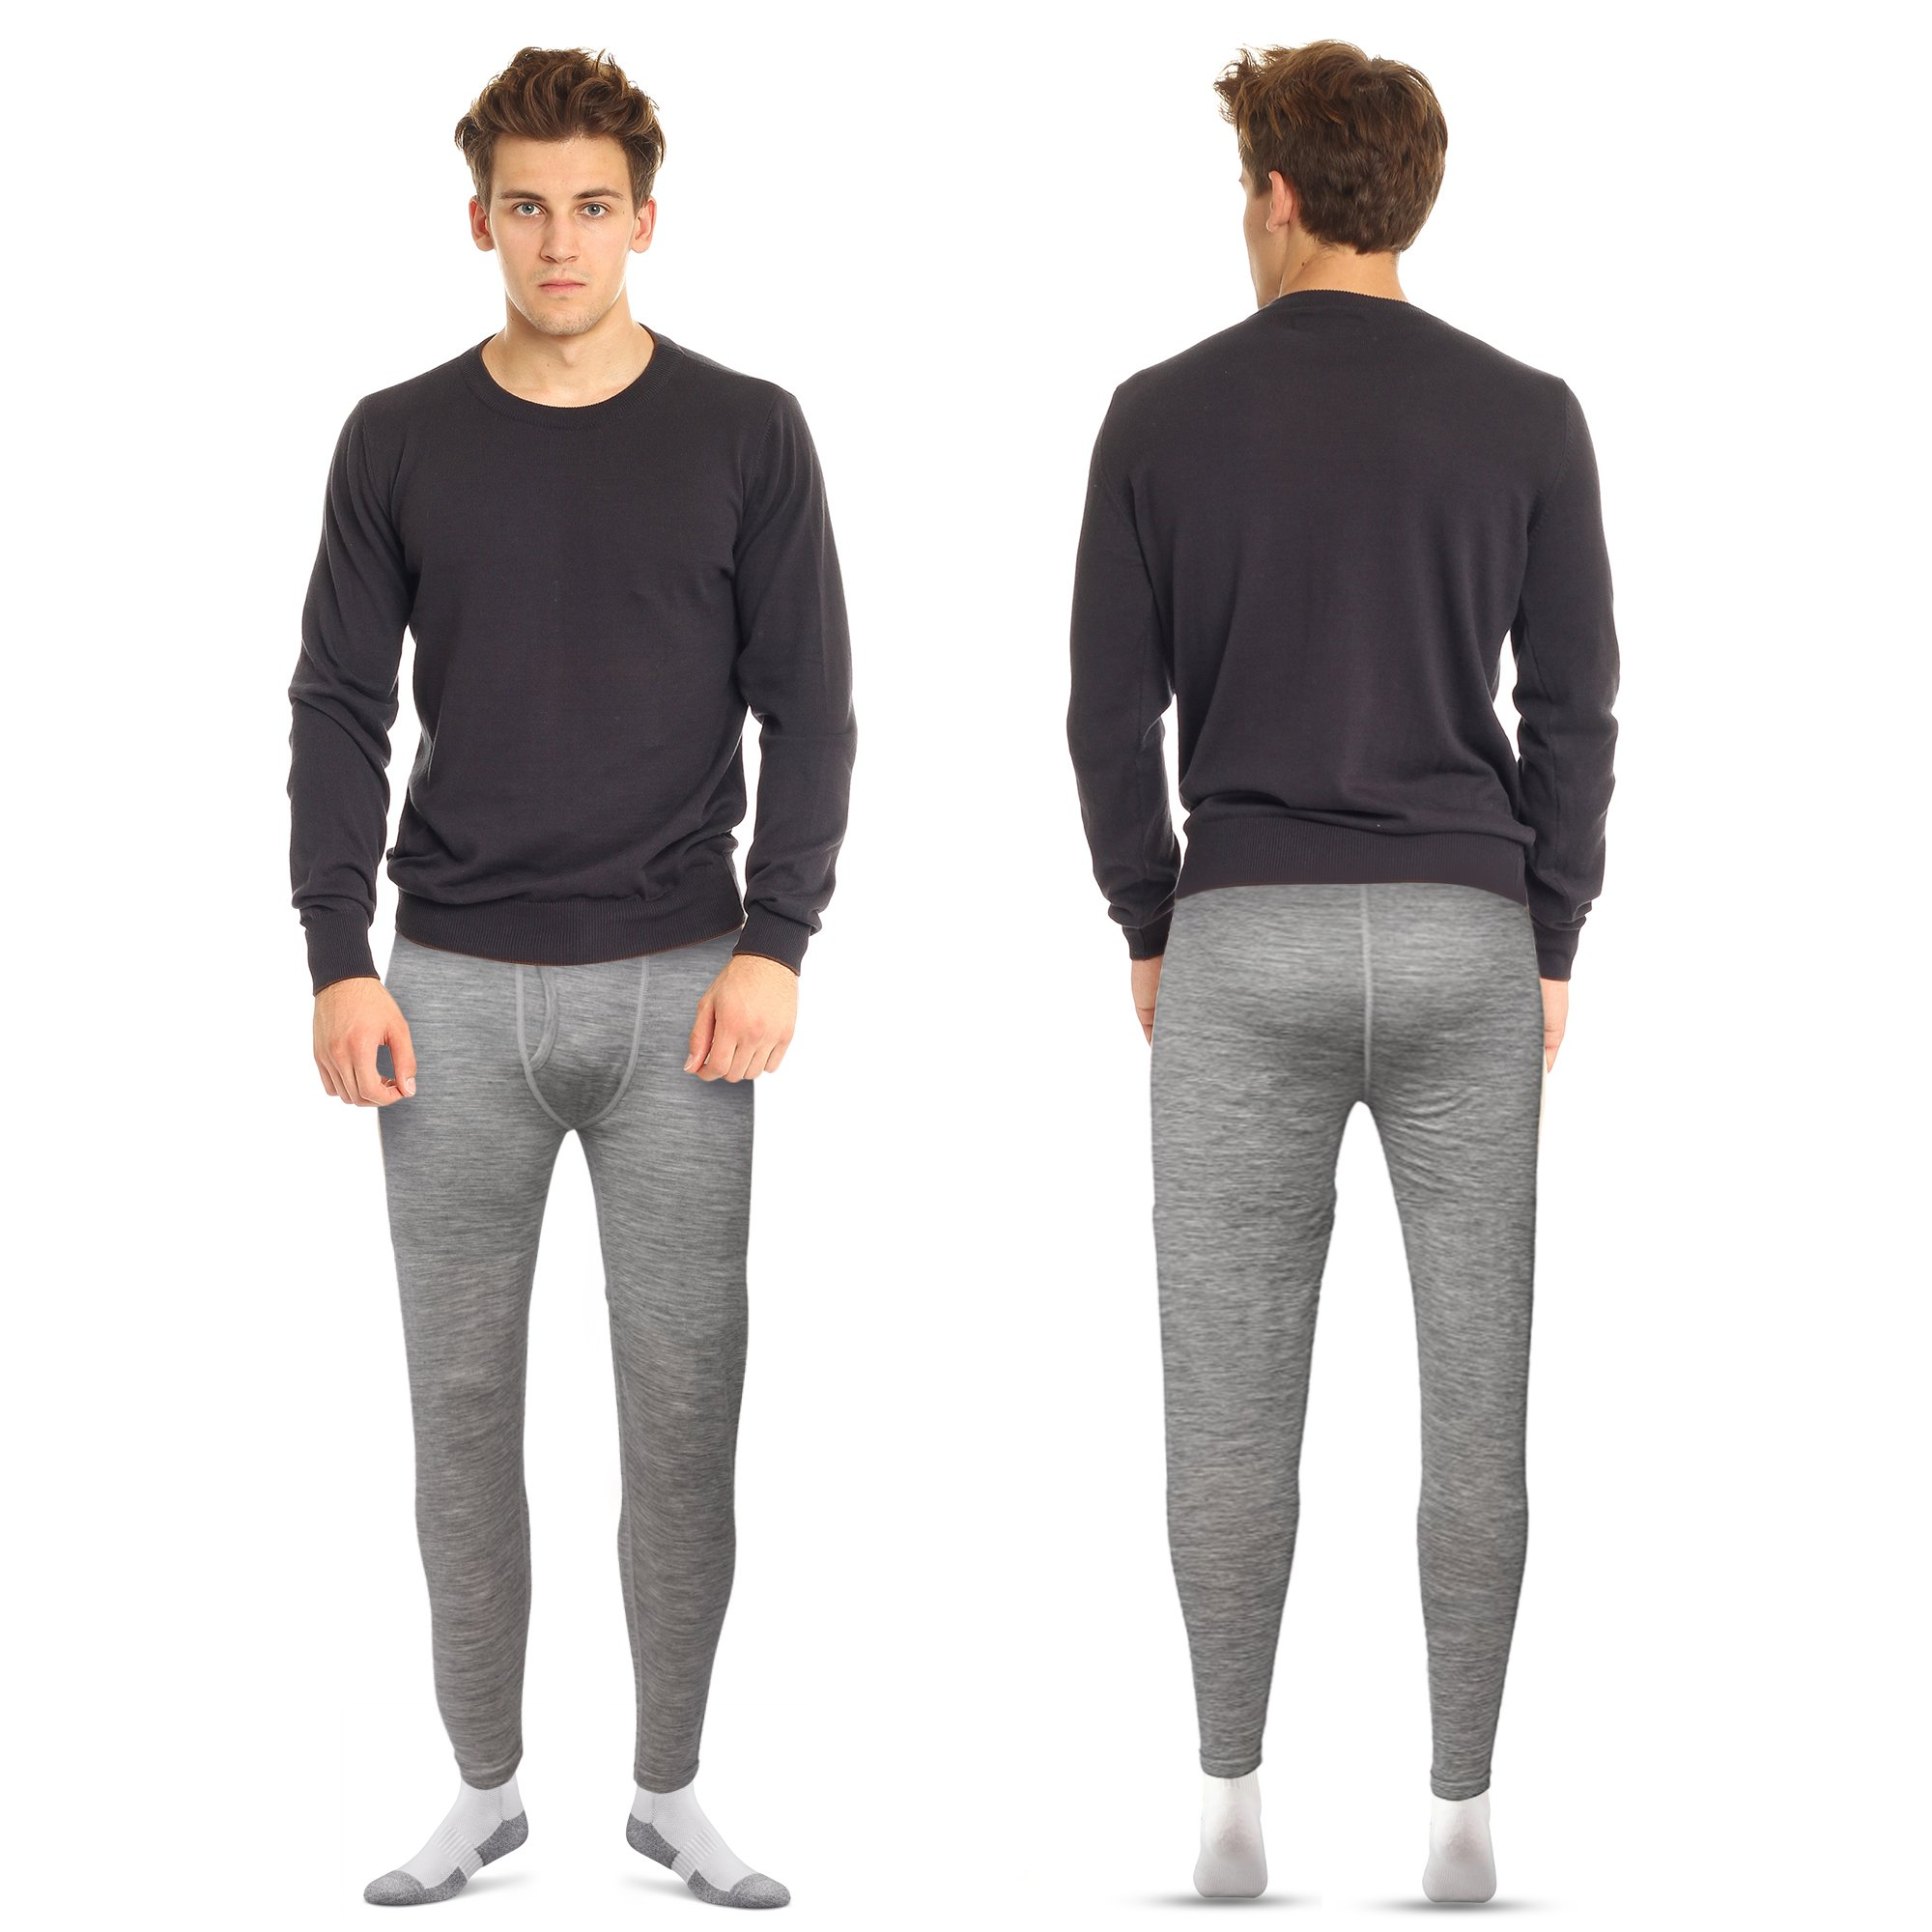 7EVEN 100% Merino Wool Mens Base Layer Bottom (Grey, XL) by 7EVEN (Image #4)